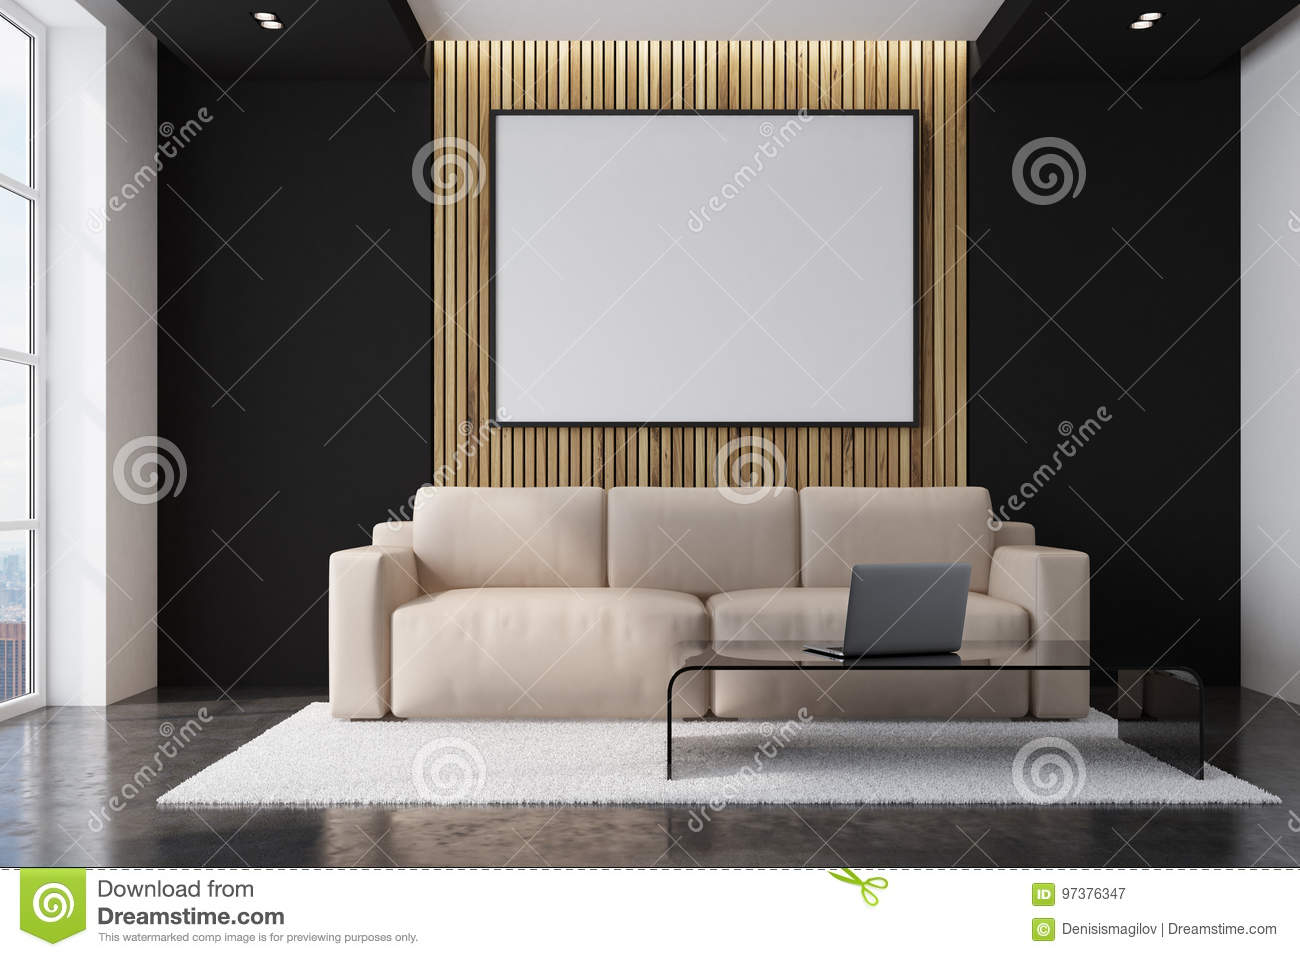 Salon Beige De Sofa Avec Une Affiche Illustration Stock Illustration Du Sofa Beige 97376347